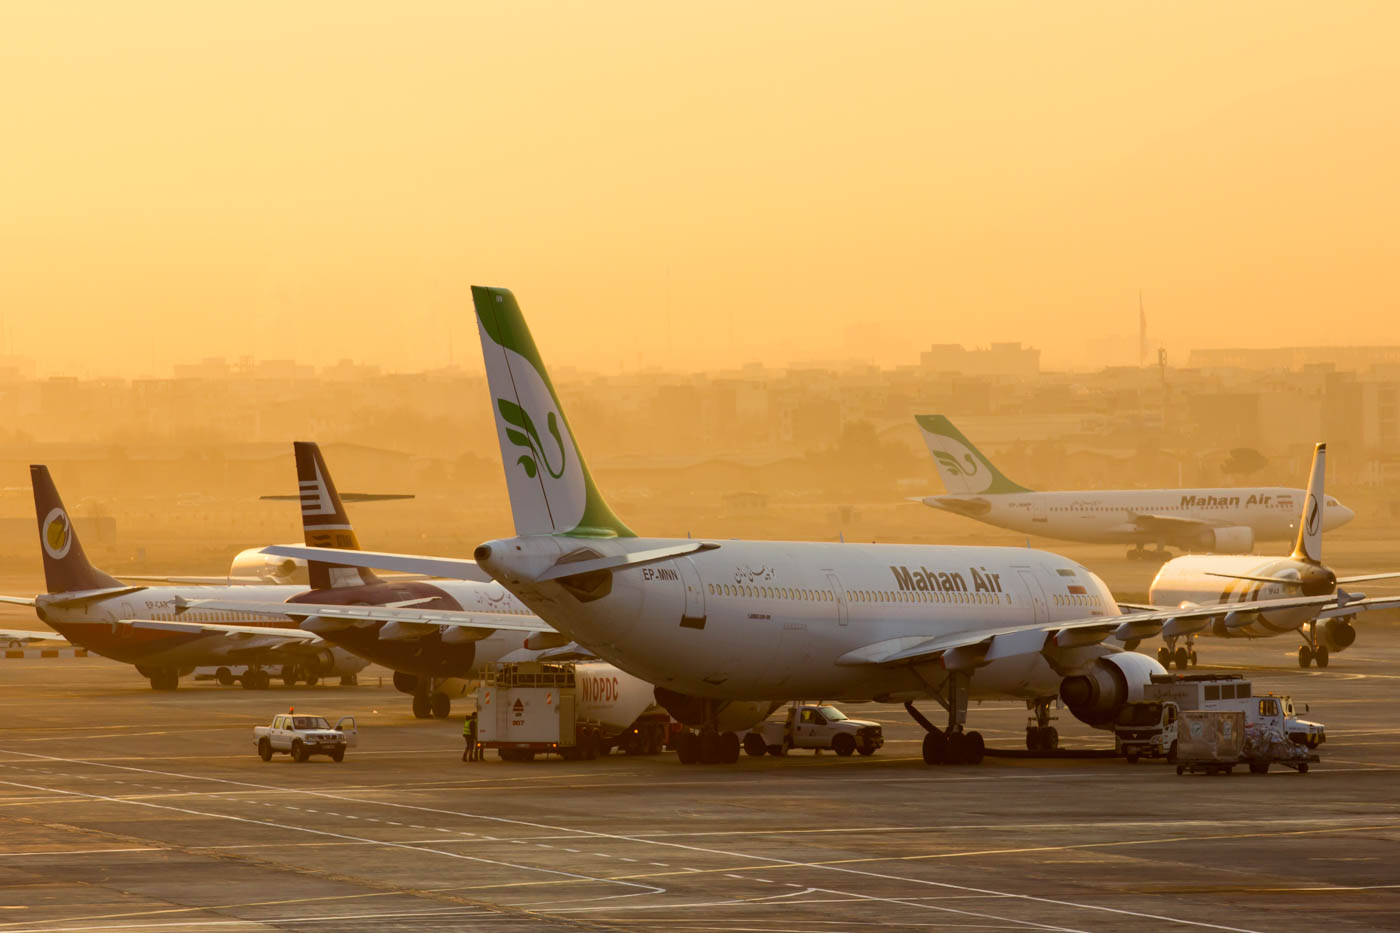 Mahan Air Airbus A310 at Tehran Mehrabad Airport